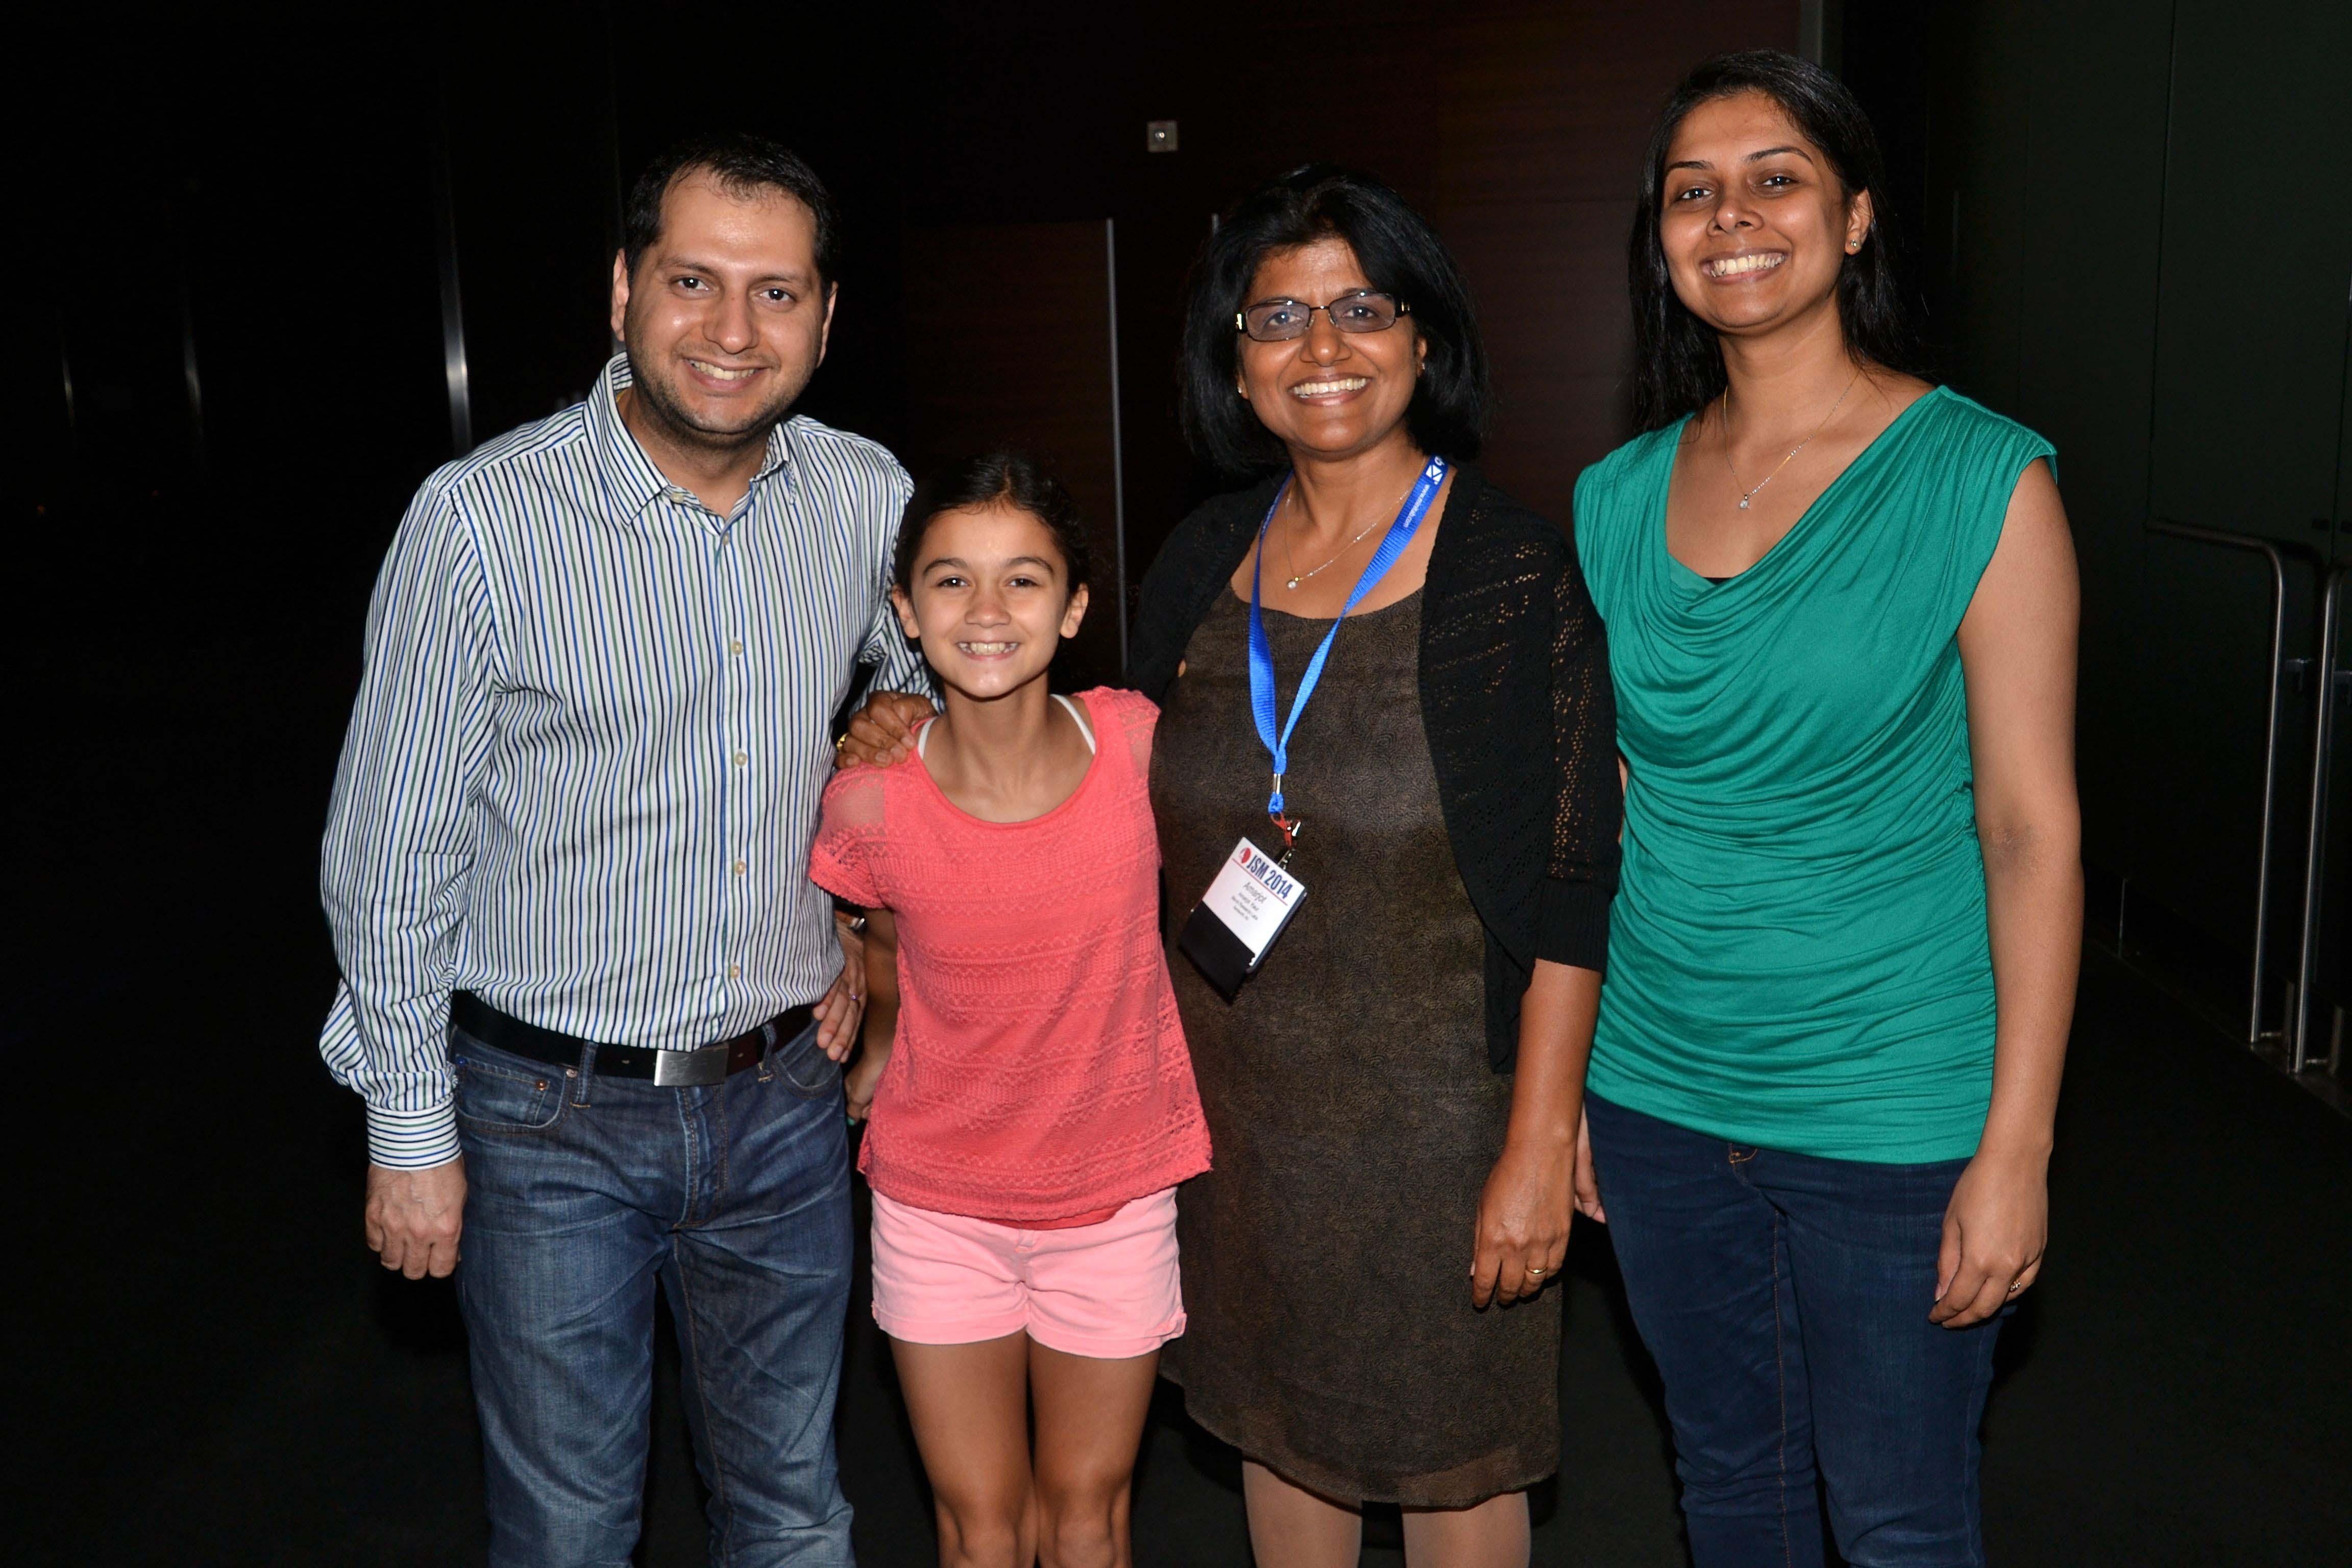 2014 Fellow Amarjat Kaur (second from right) with her family